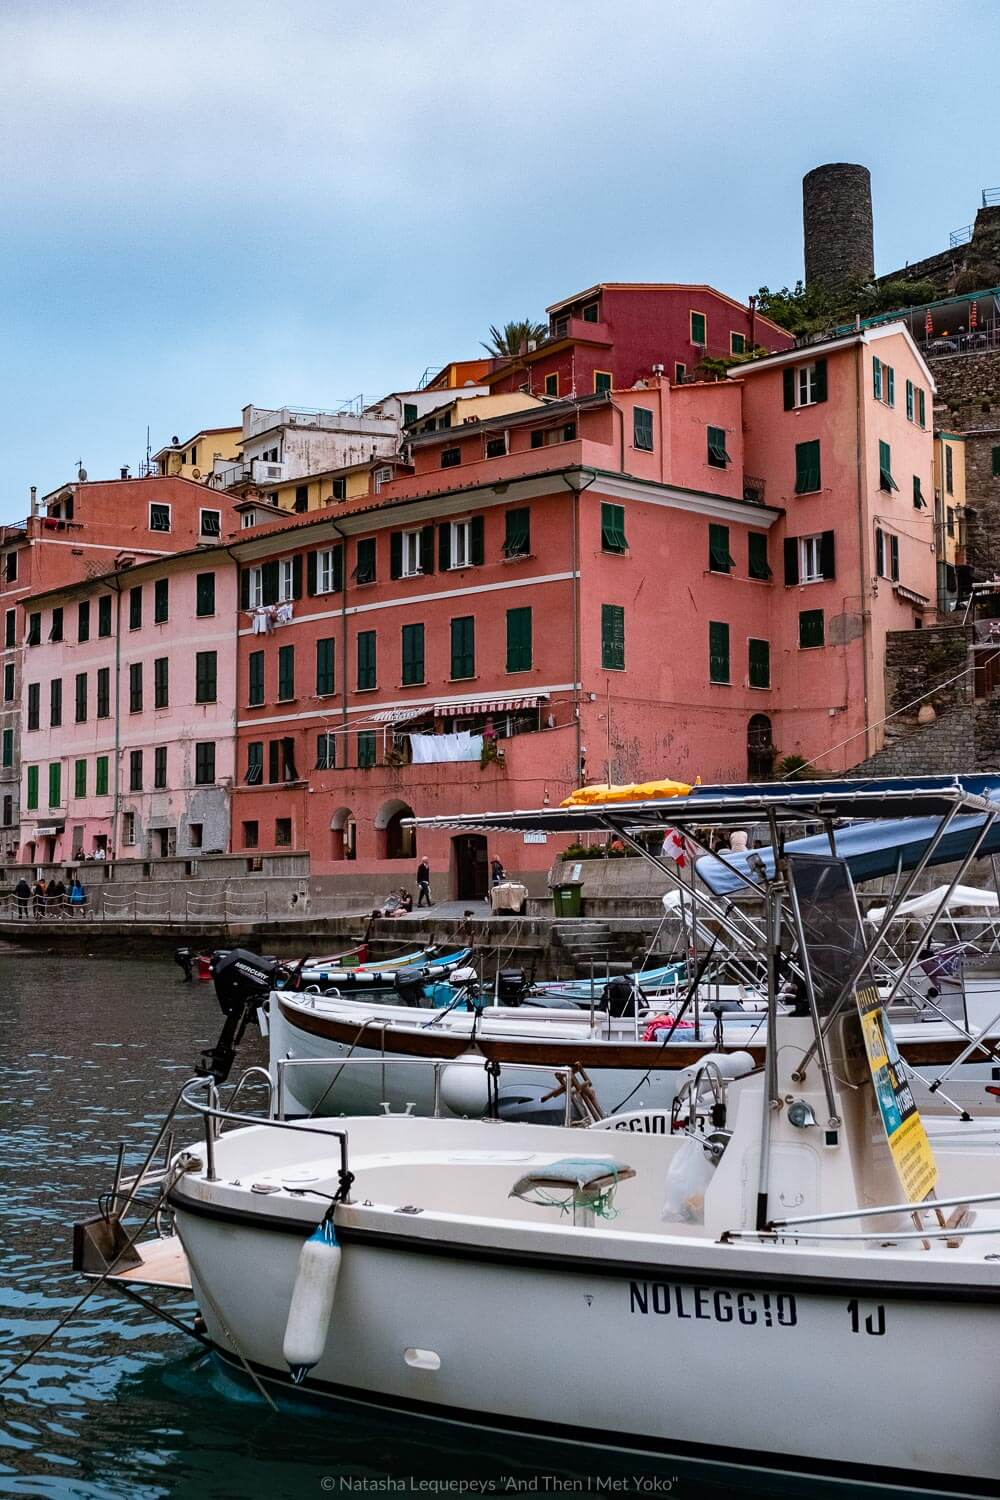 """Boats at Vernazza, Cinque Terre. Travel photography and guide by © Natasha Lequepeys for """"And Then I Met Yoko"""". #cinqueterre #italy #travelphotography"""